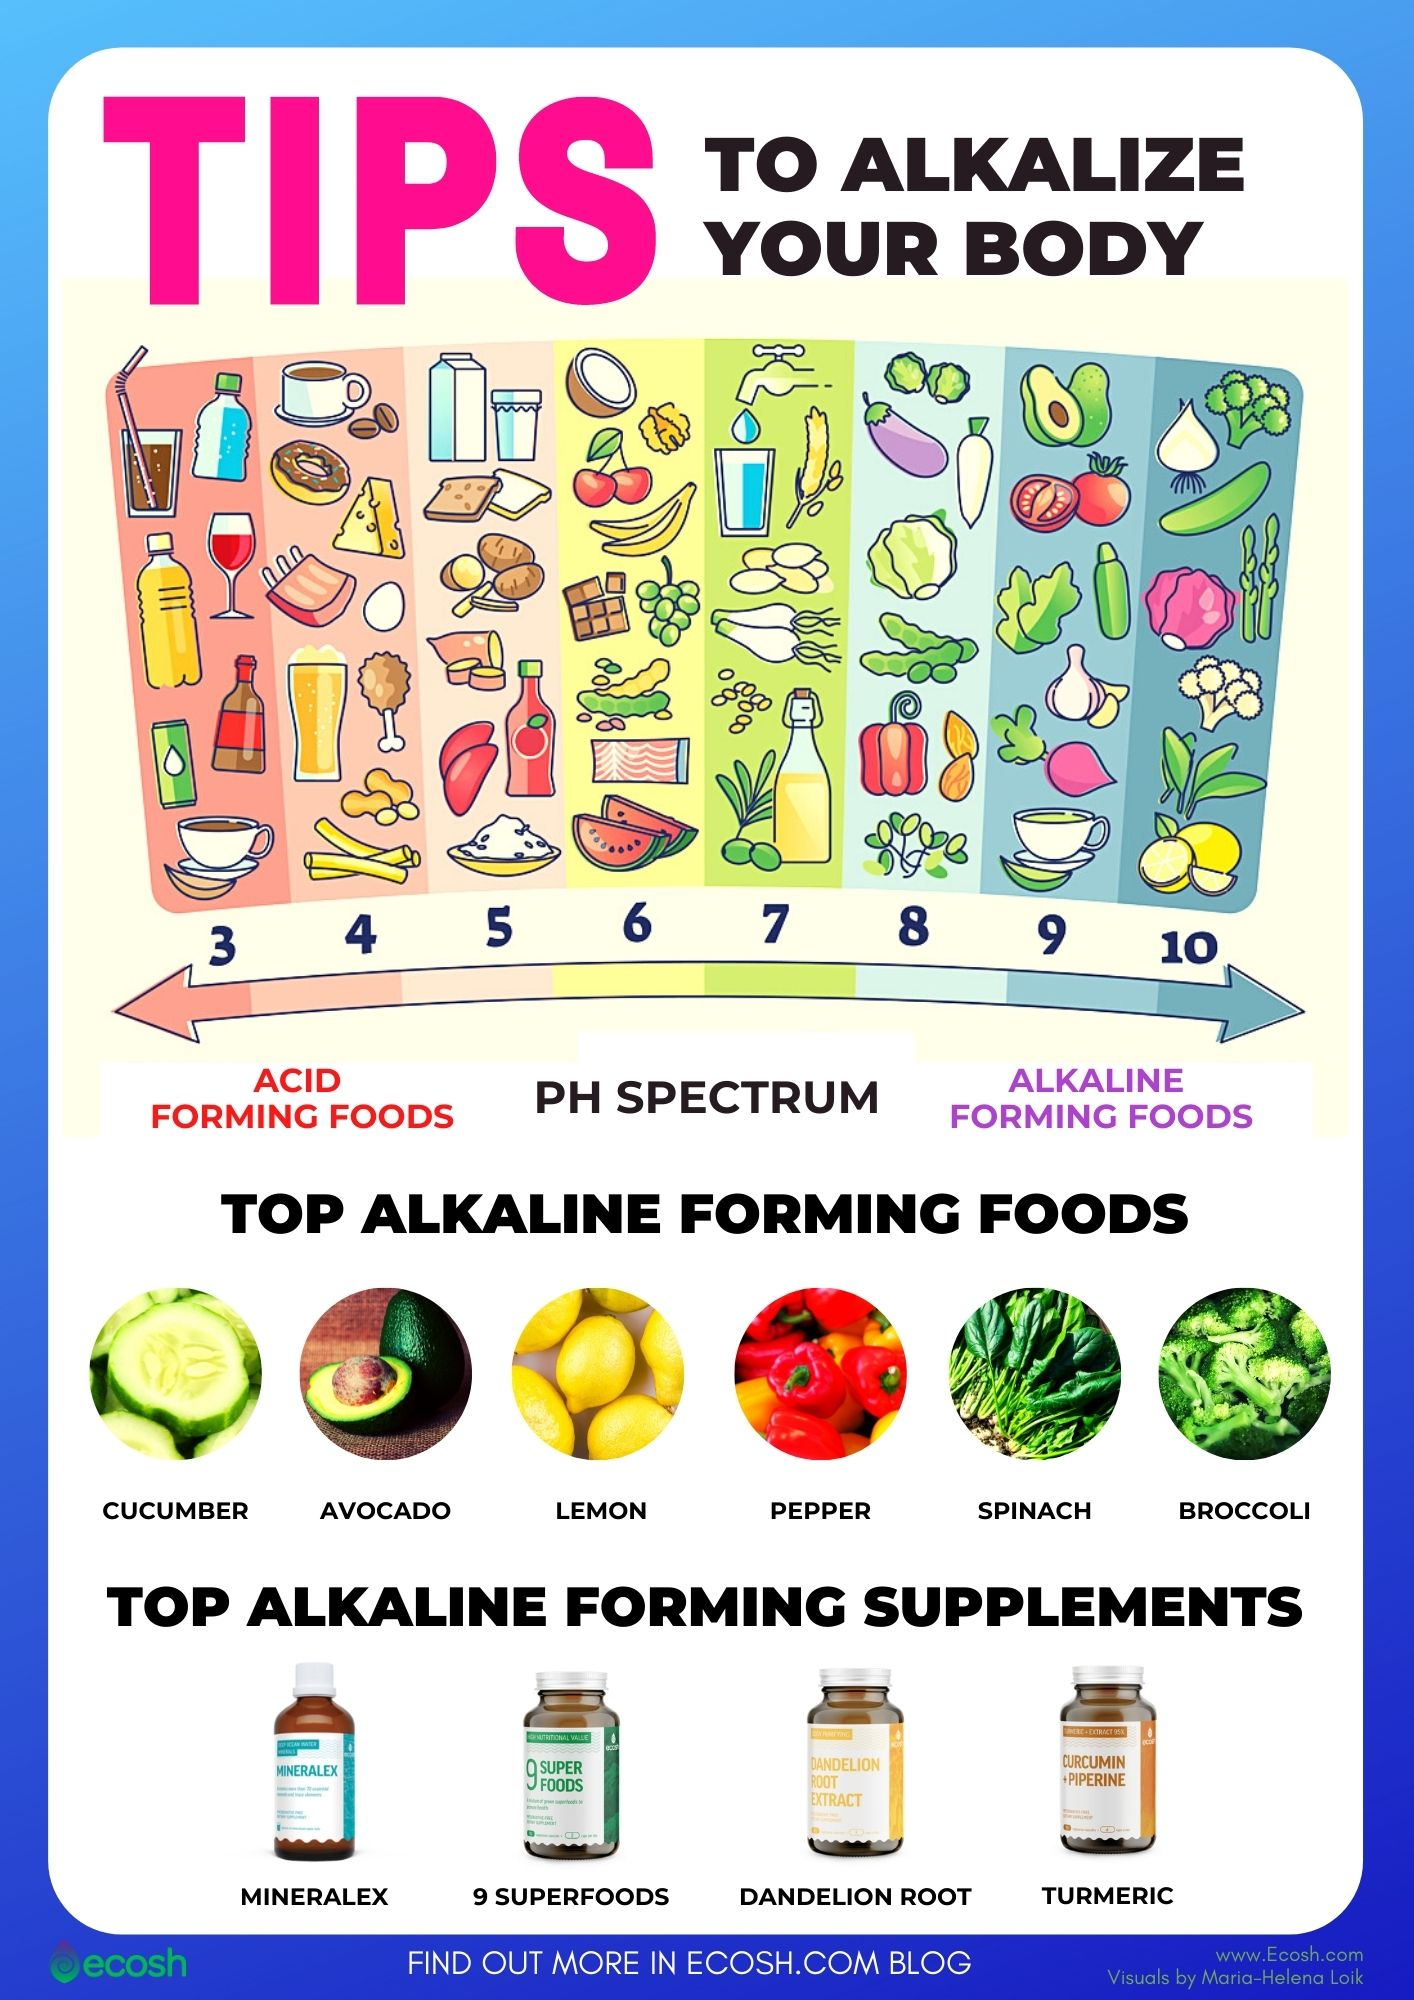 Tips_to_Alkalize_Your_Body_Most_Alkalizing_Foods_Alkalizing_Supplements_Acidic_Foods_To_Avoid_Alkaline_Foods_List_Acidic_Foods_List_Alkaline_Supplements